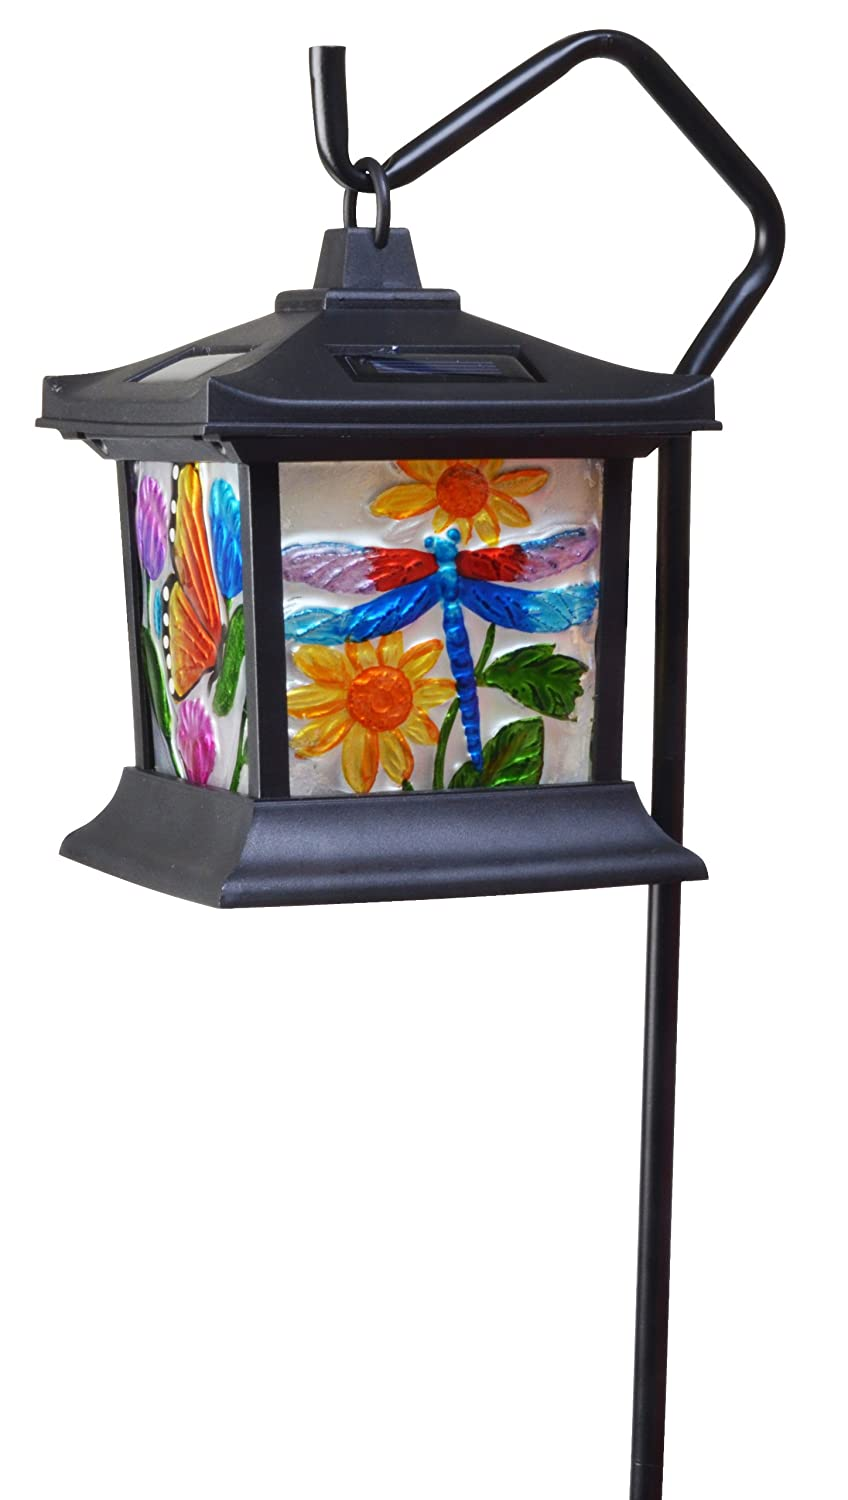 Hanging stained glass lamp led light solar powered outdoor for Solar powered patio lights